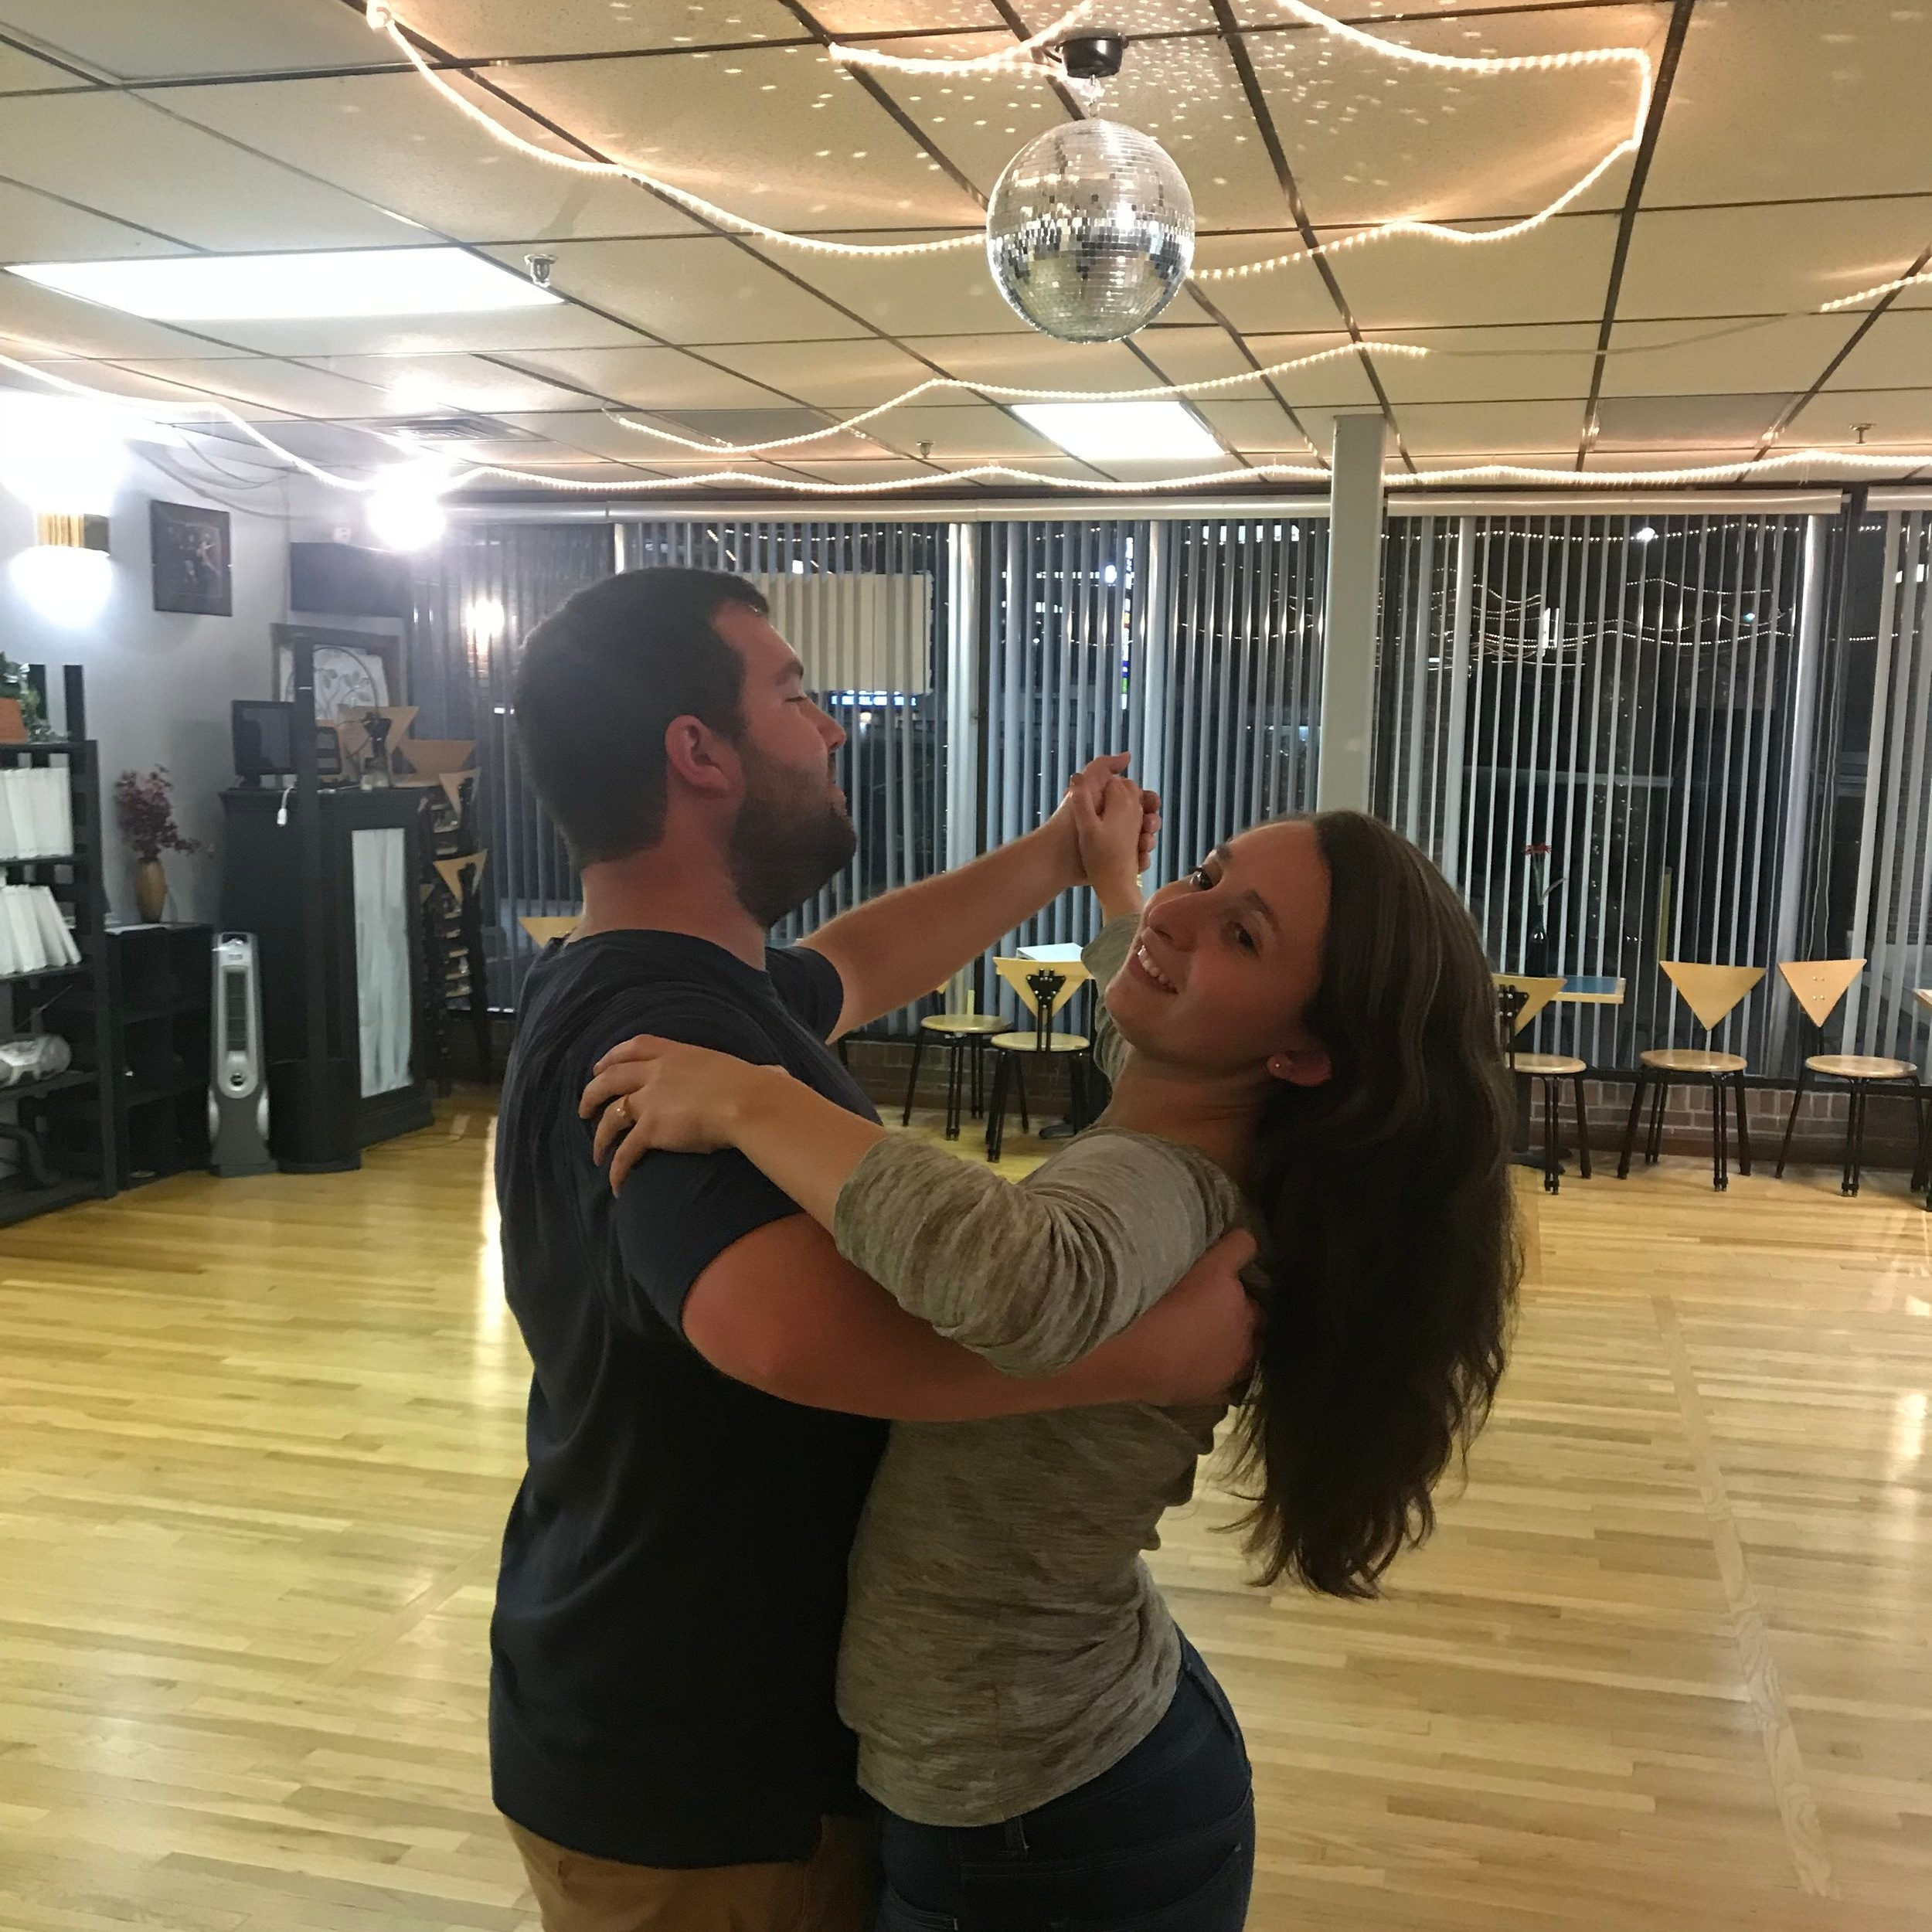 Private Lessons - -Private lessons, for beginners or advanced dancers, are essential for getting the most out of your dancing! Either alone or with a partner, you will be working one on one with a trained instructor who will completely tailor your lesson to meet your dance goals. All while being taught step by step at your own pace! We will focus on not only learning new moves, but improving your timing, lead and following skills, technique, posture, dance hold, and valuable fine tuning, which you can't get in a group setting! Private lessons are also the way to go if you want any specific choreography like a wedding routine or competition routine! Private lessons are 45 minutes long and are scheduled based upon your availability anytime Monday-Friday 1pm-10pm and Saturdays by appointment!